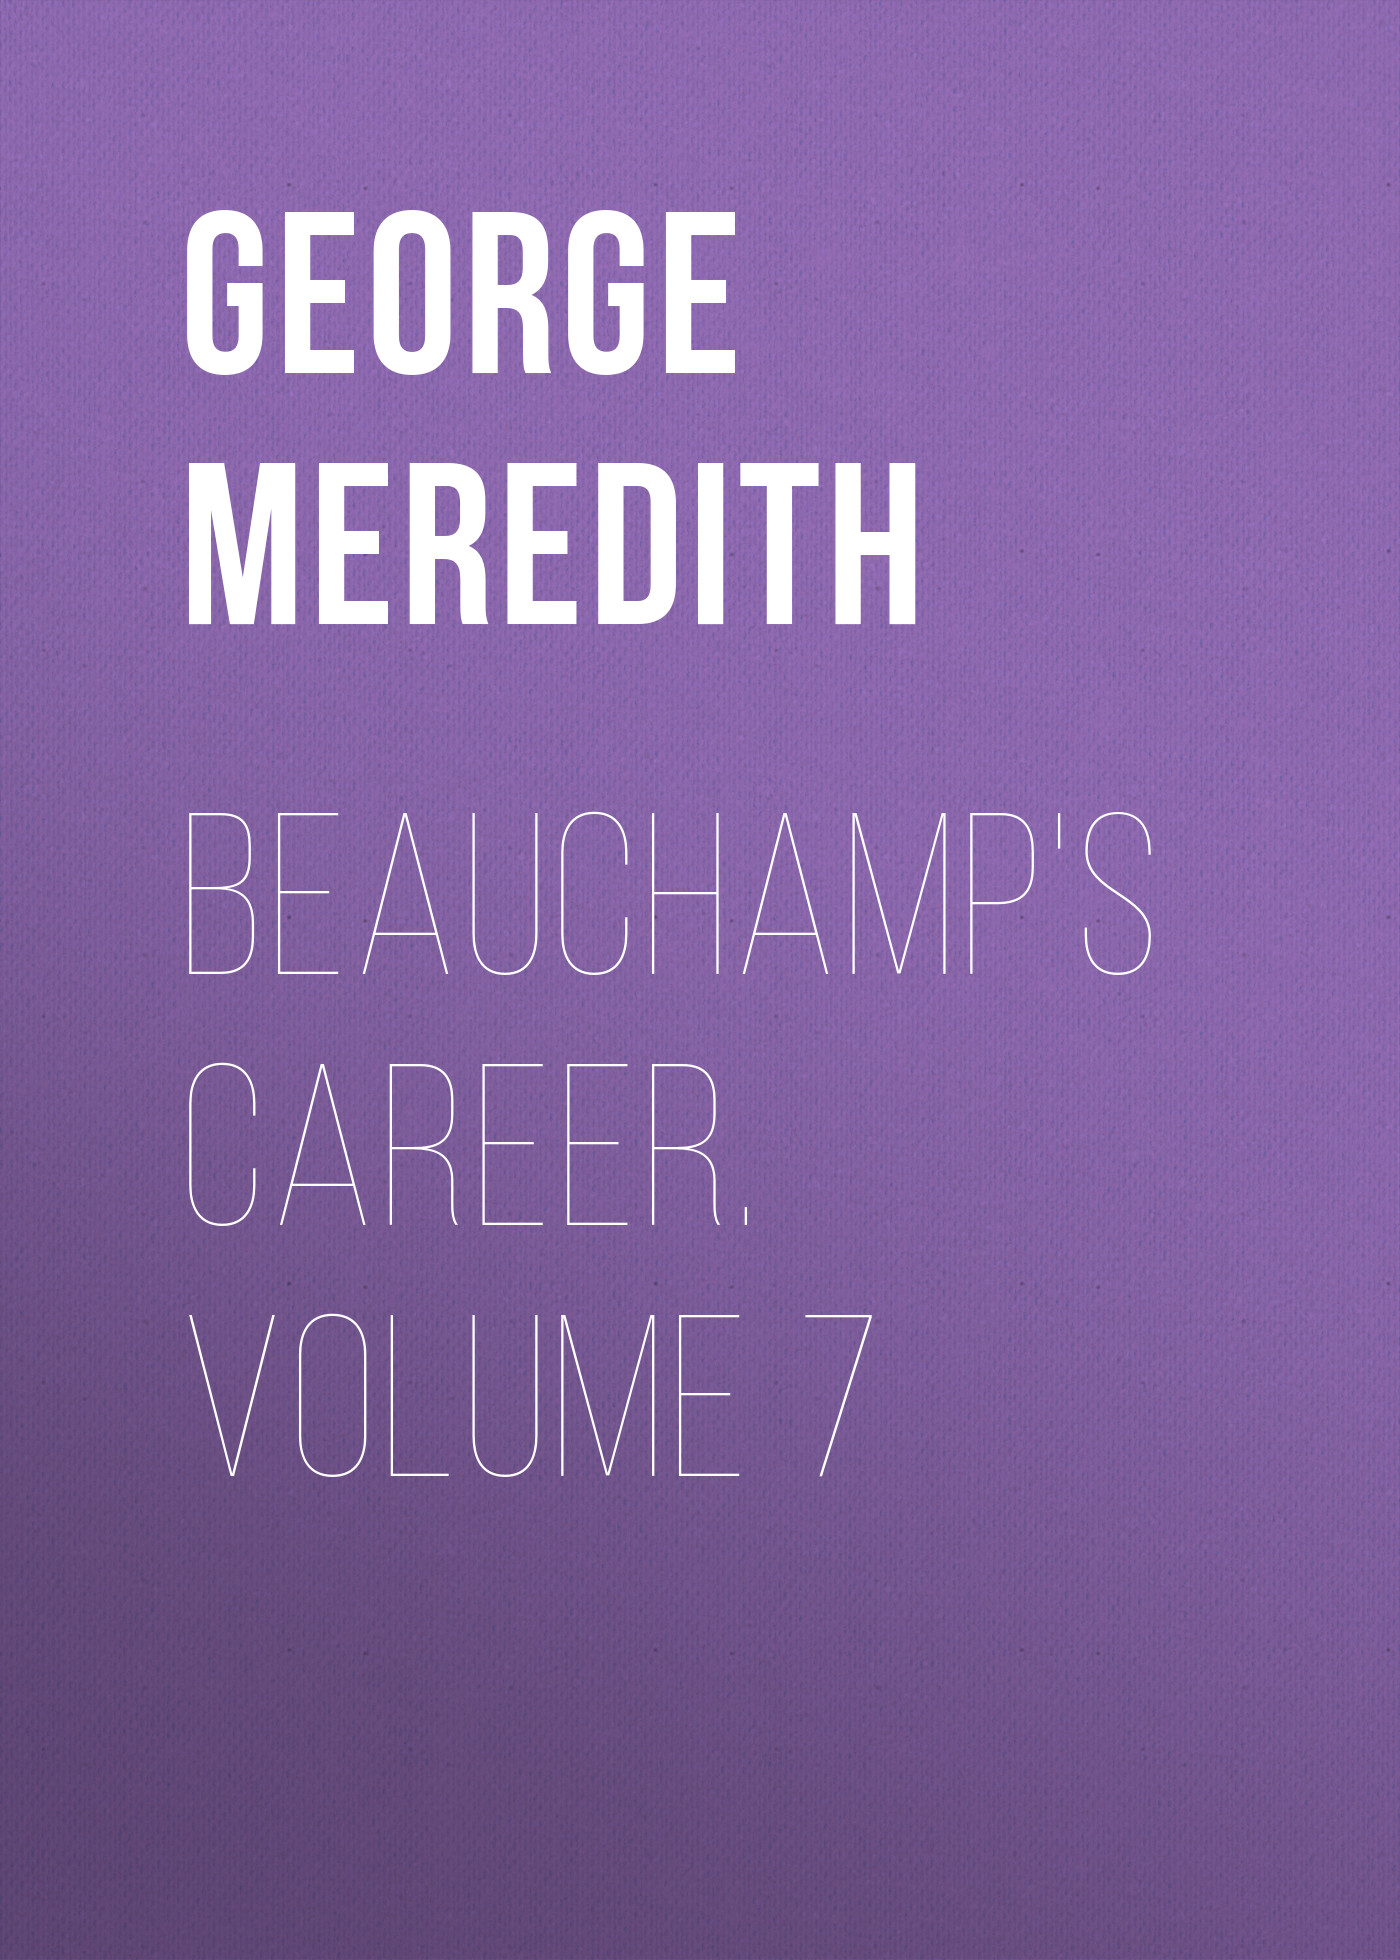 цена George Meredith Beauchamp's Career. Volume 7 в интернет-магазинах